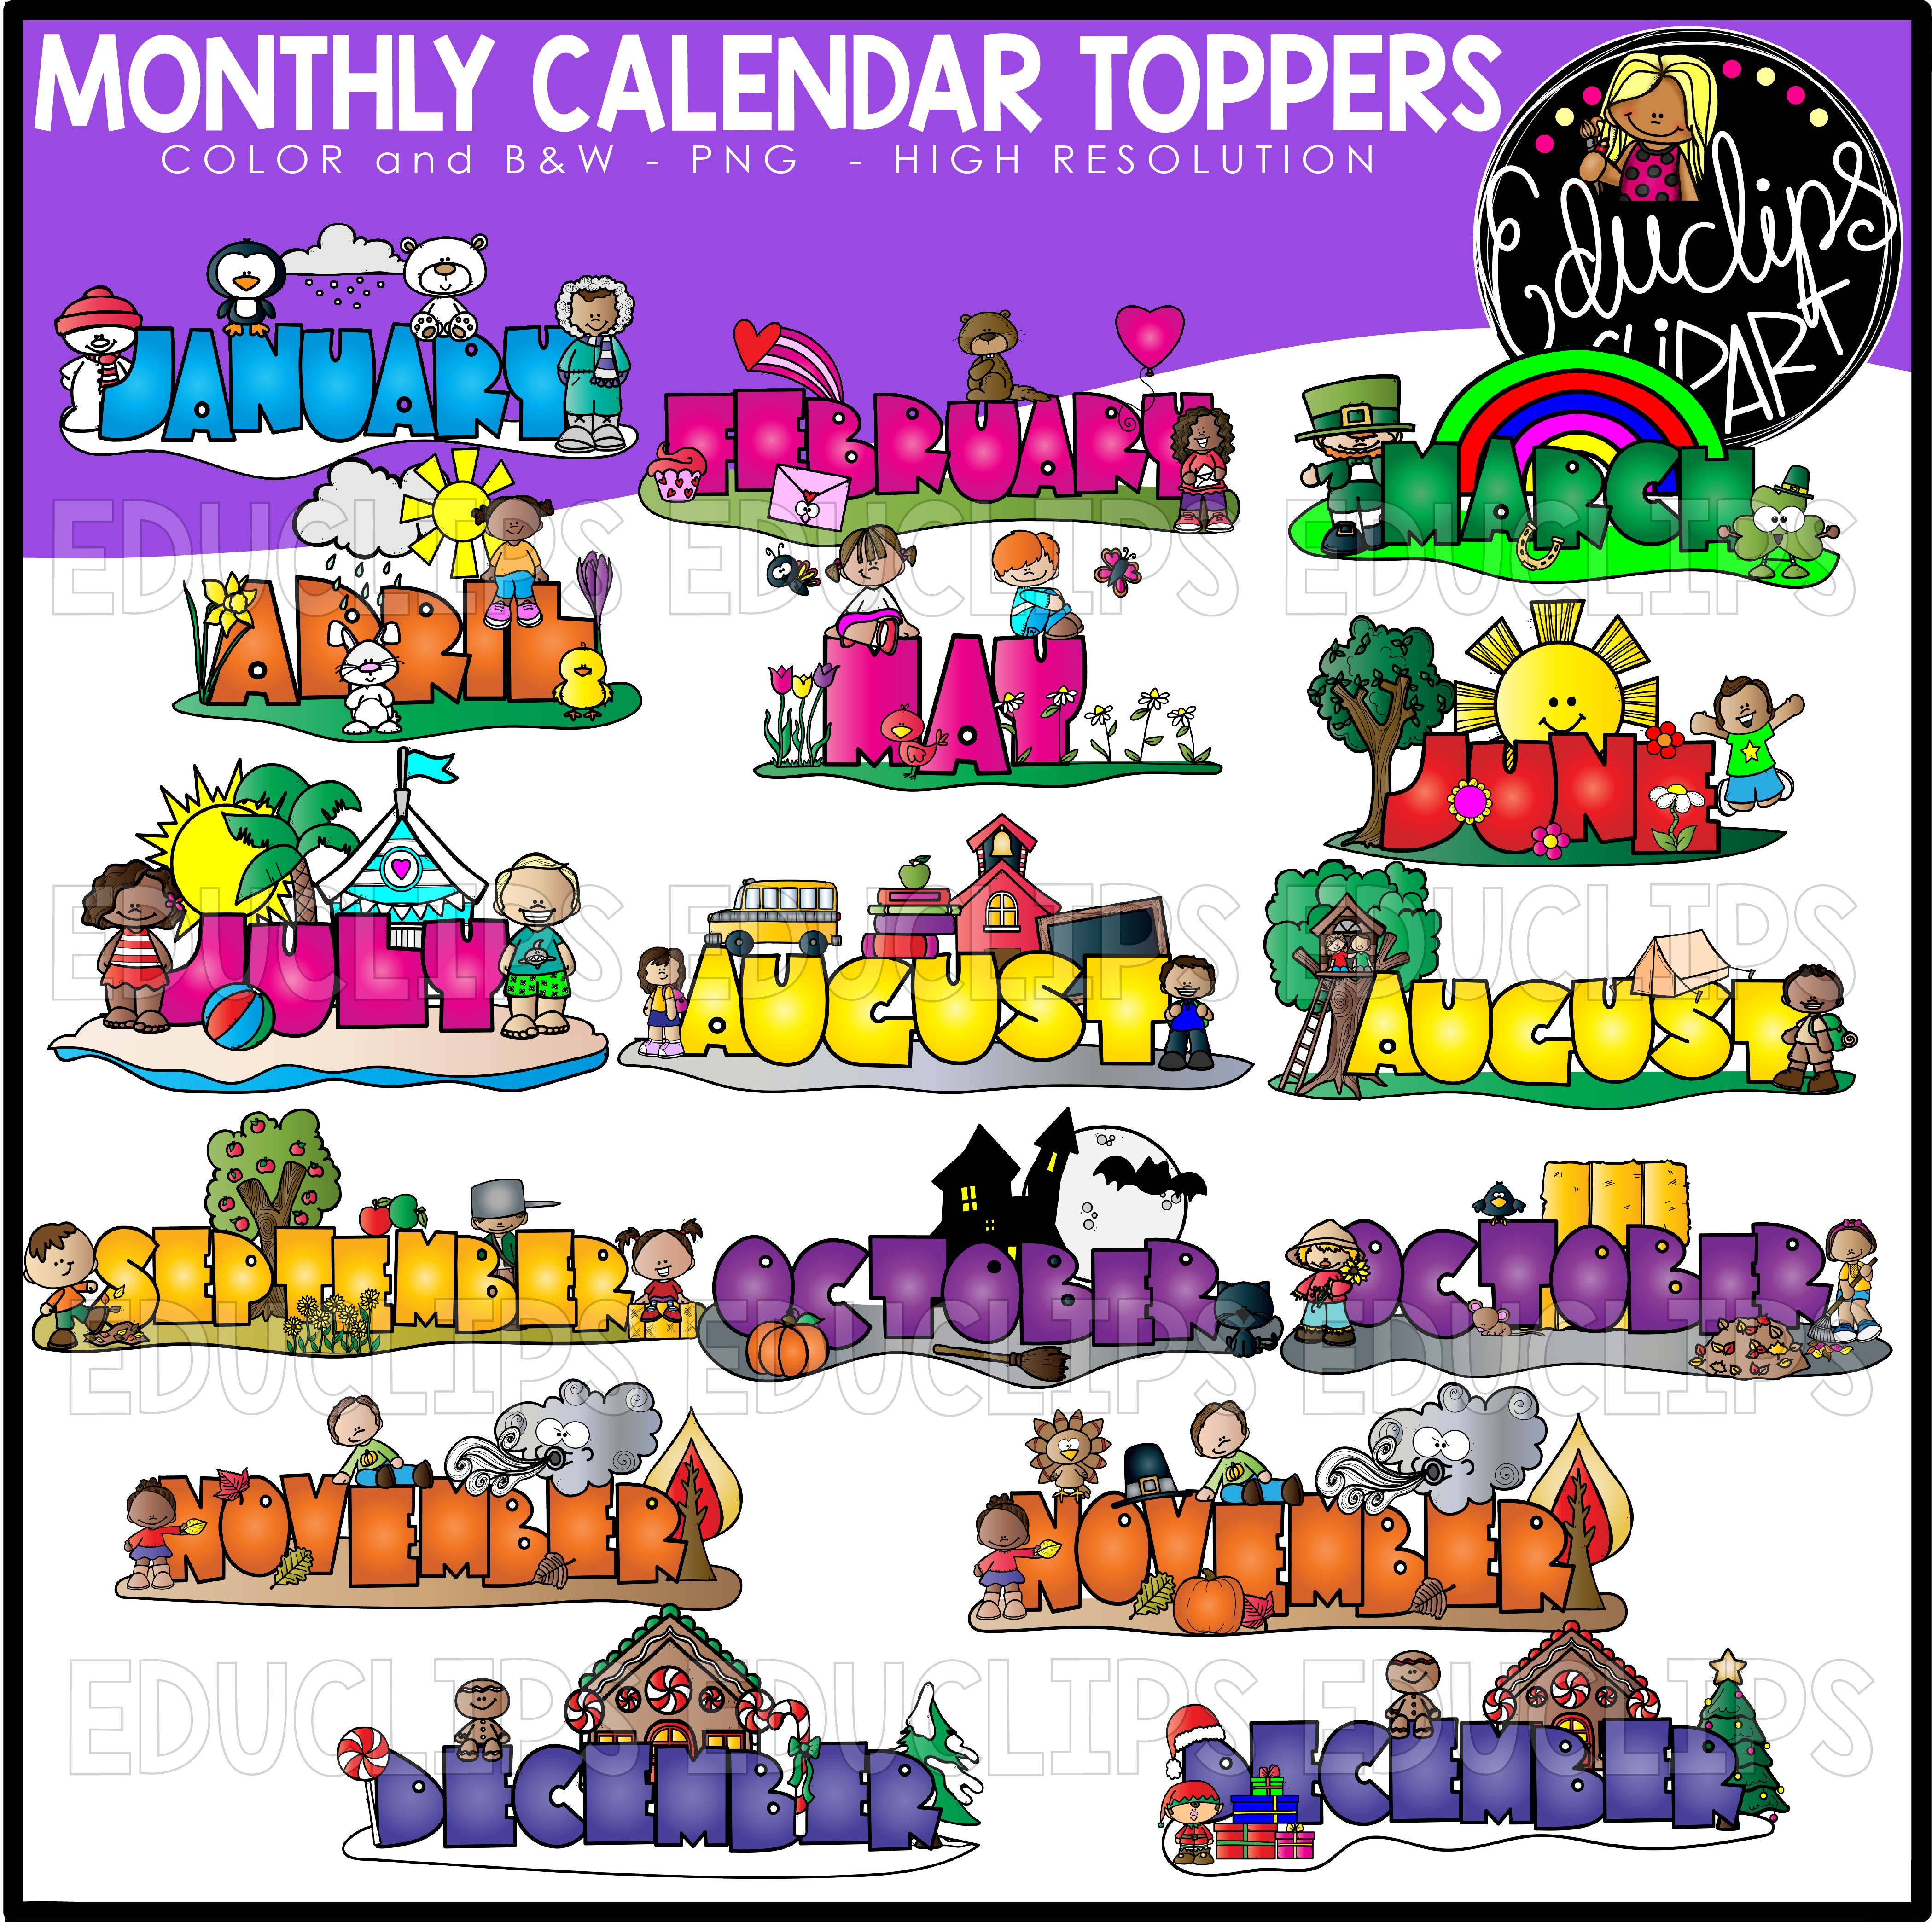 2019 b&w clipart graphic freeuse Monthly Calendar Toppers Clip Art Bundle (Color and B&W) graphic freeuse